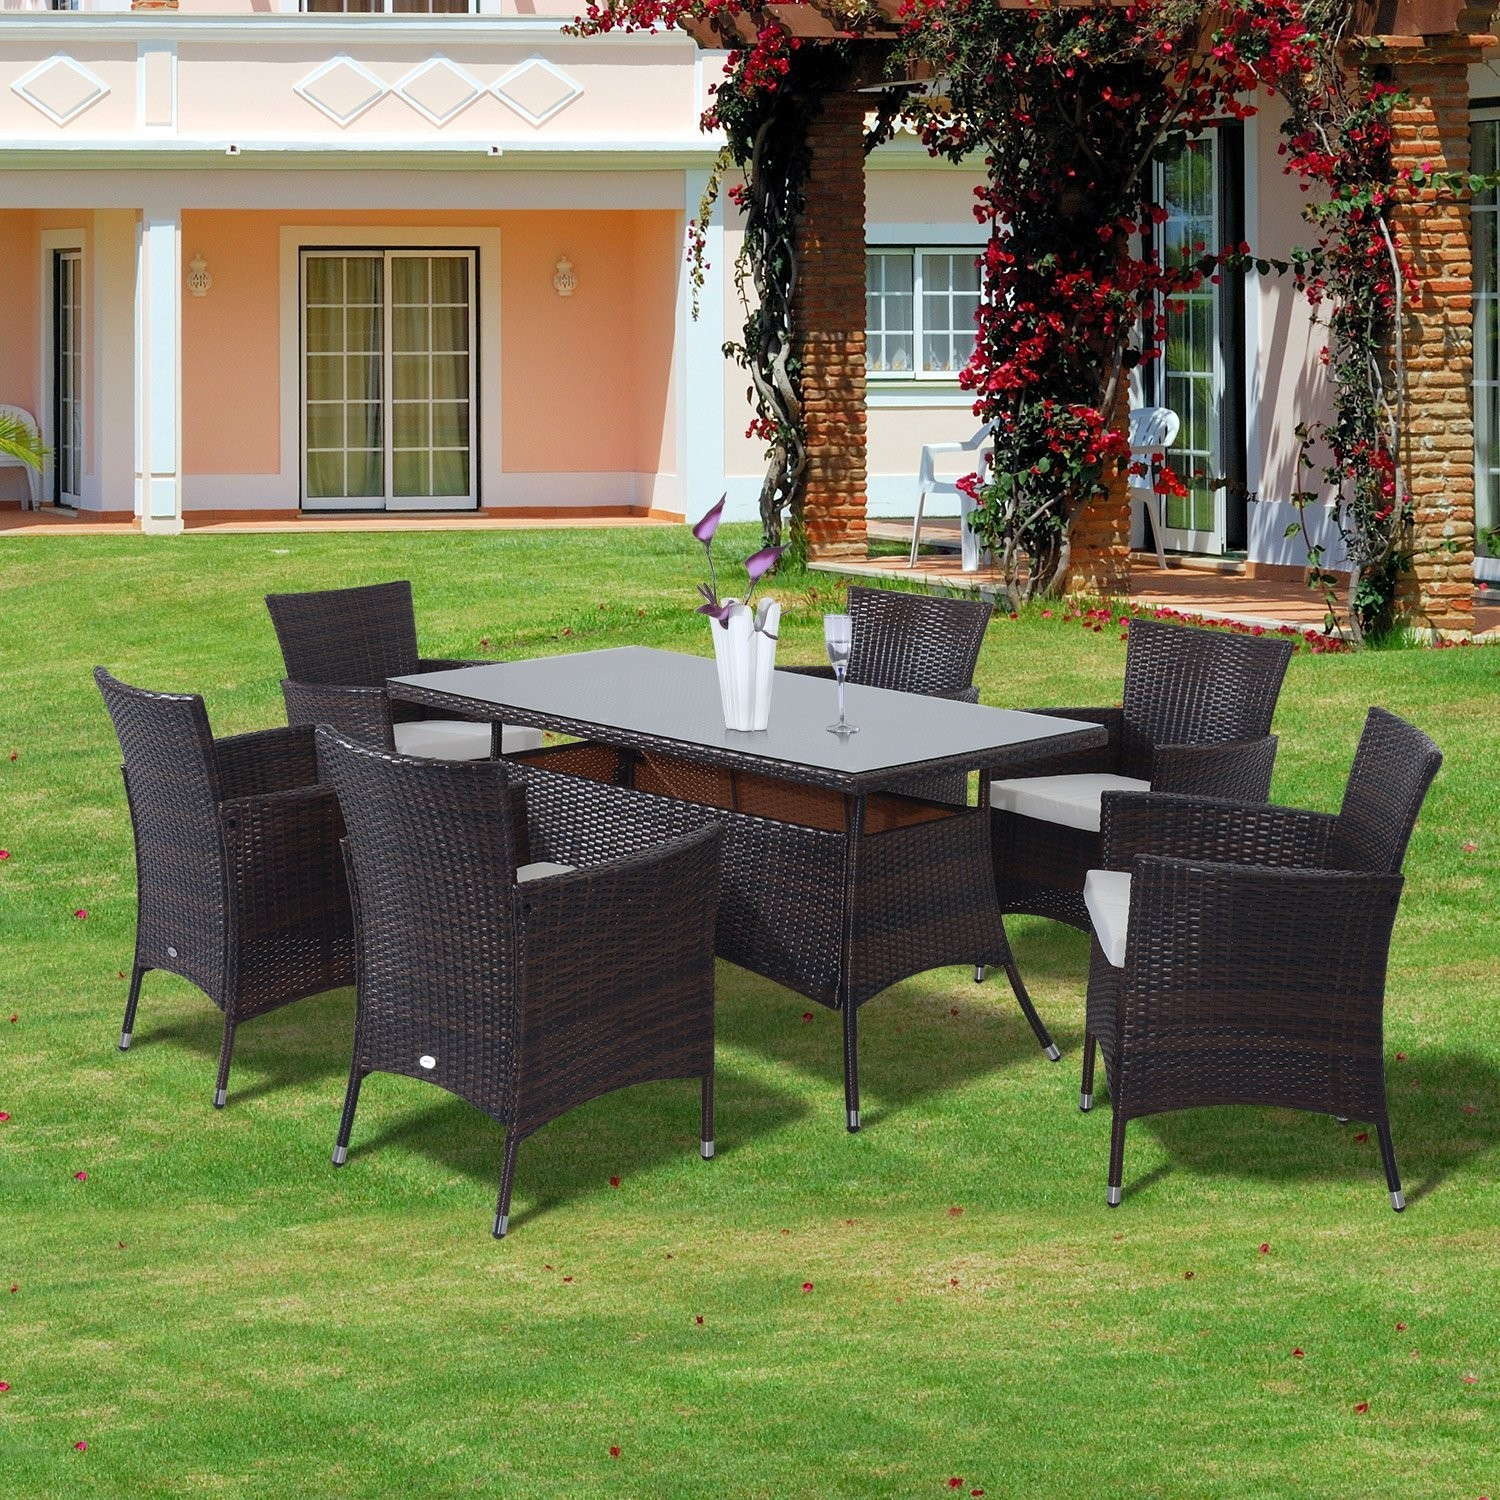 Best ideas about Outsunny Patio Furniture . Save or Pin Outsunny 7 Pcs Rattan Dining Set Brown Now.